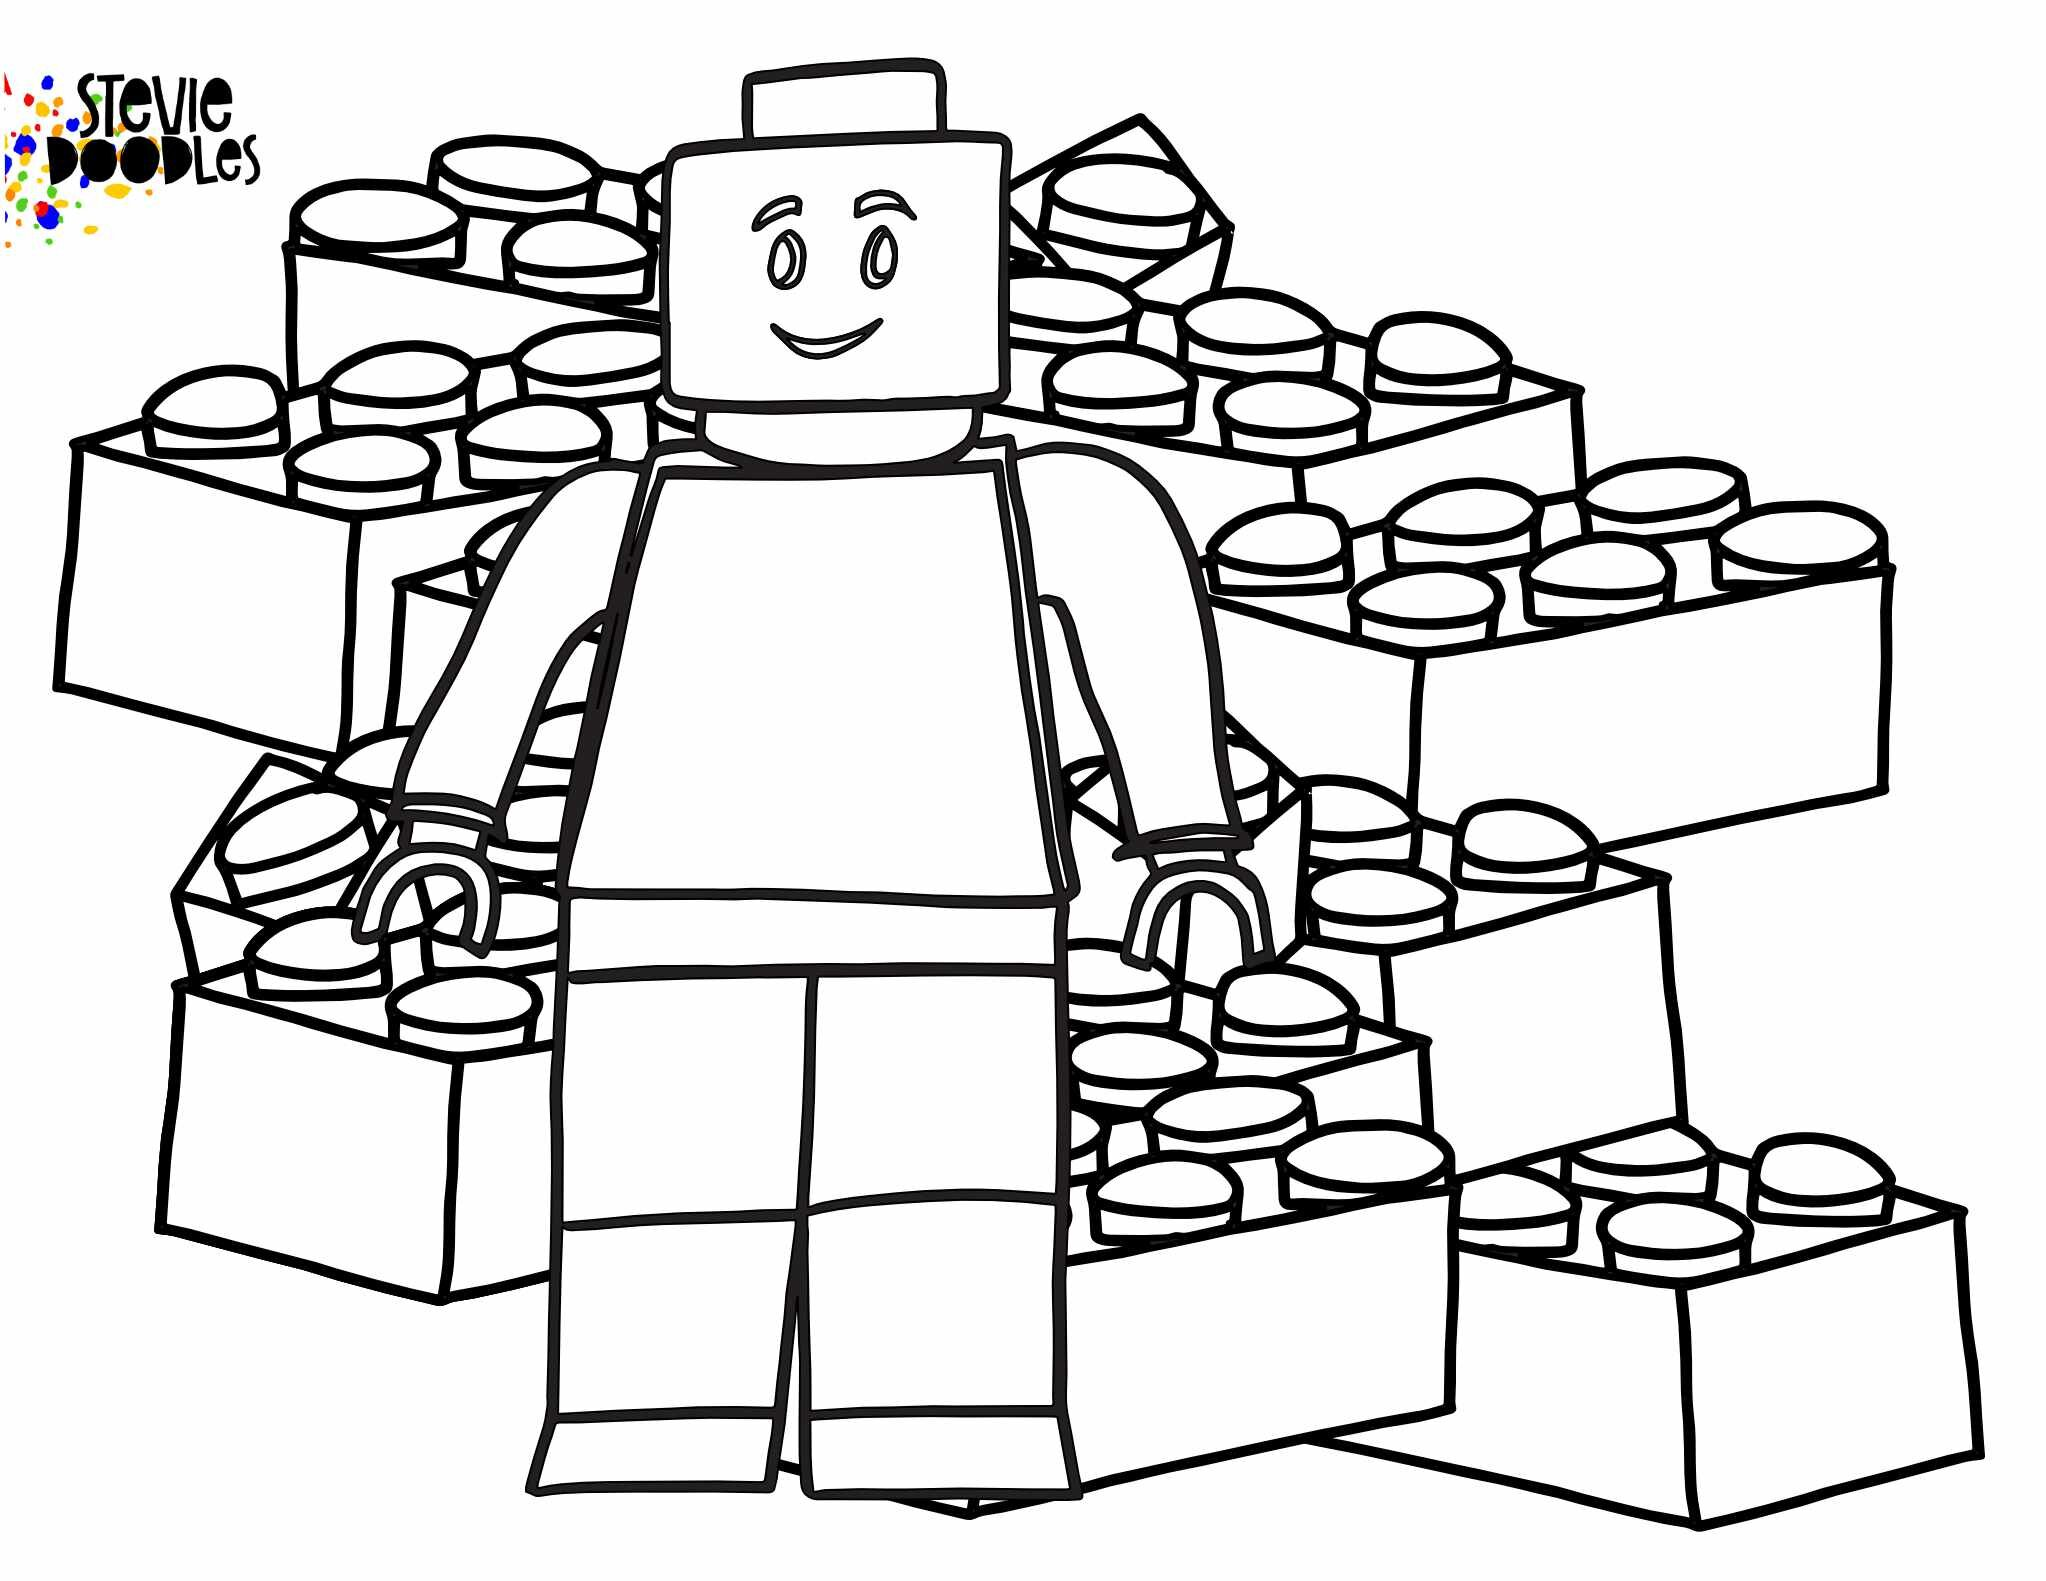 Lego Police Coloring Pages – coloring.rocks! | 773x1000